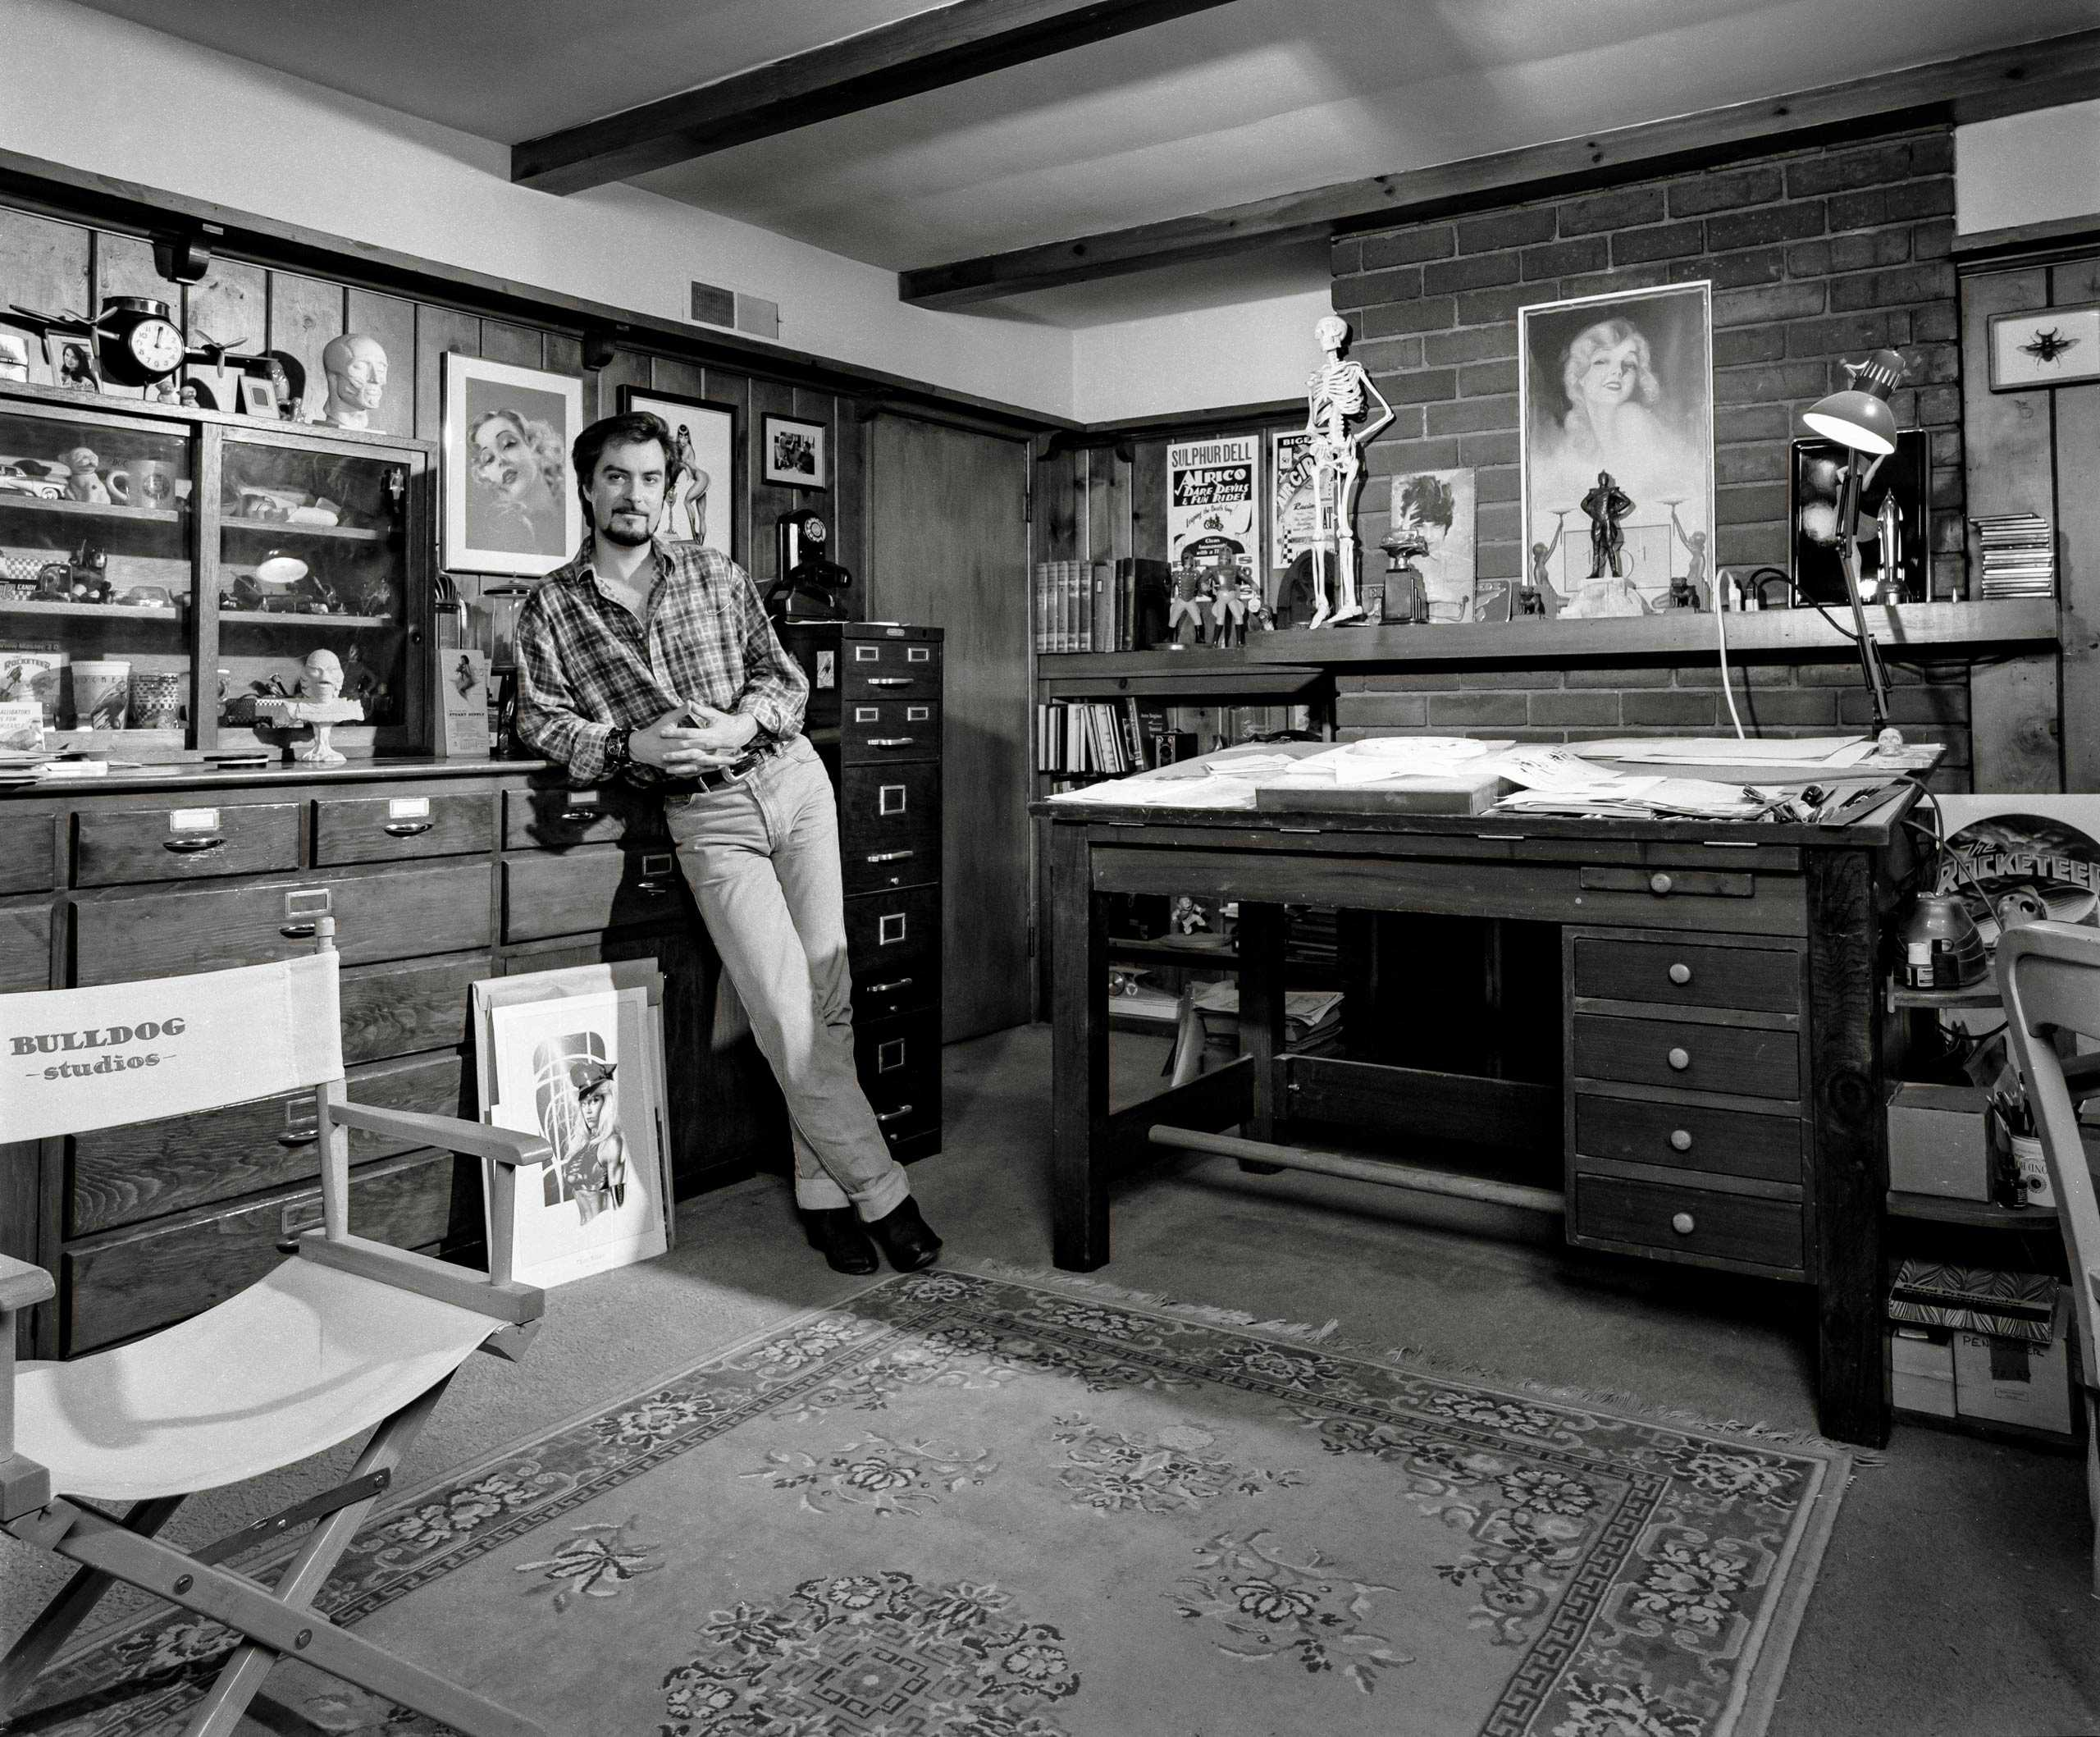 Comic Book Artist/ Illustrator Dave Stevens photographed in his studio for The Artist Within portrait Project